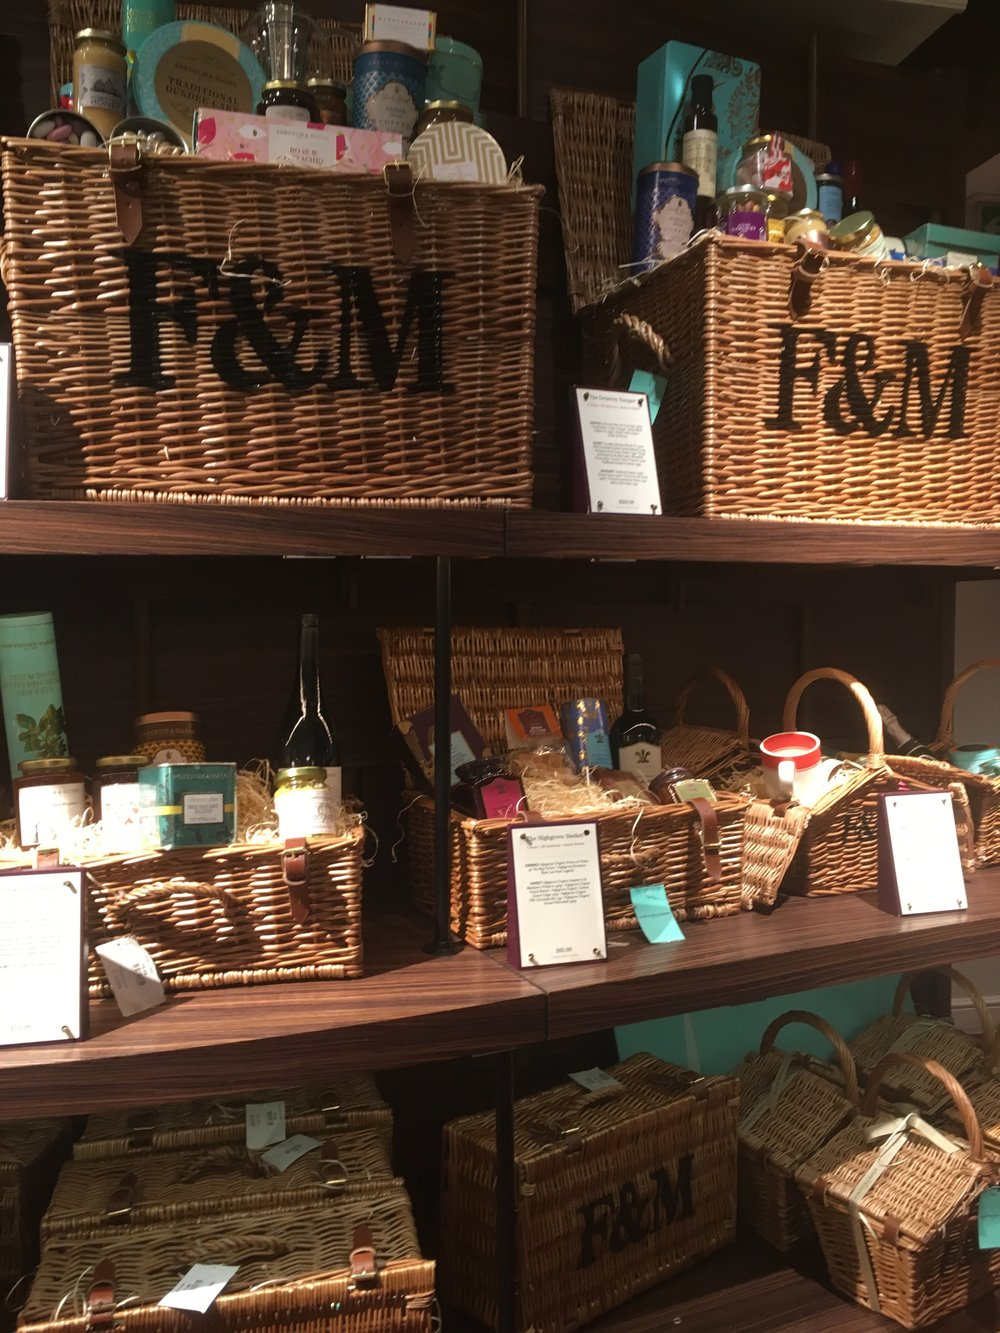 If I could have taken a picnic basket home with me I would have!